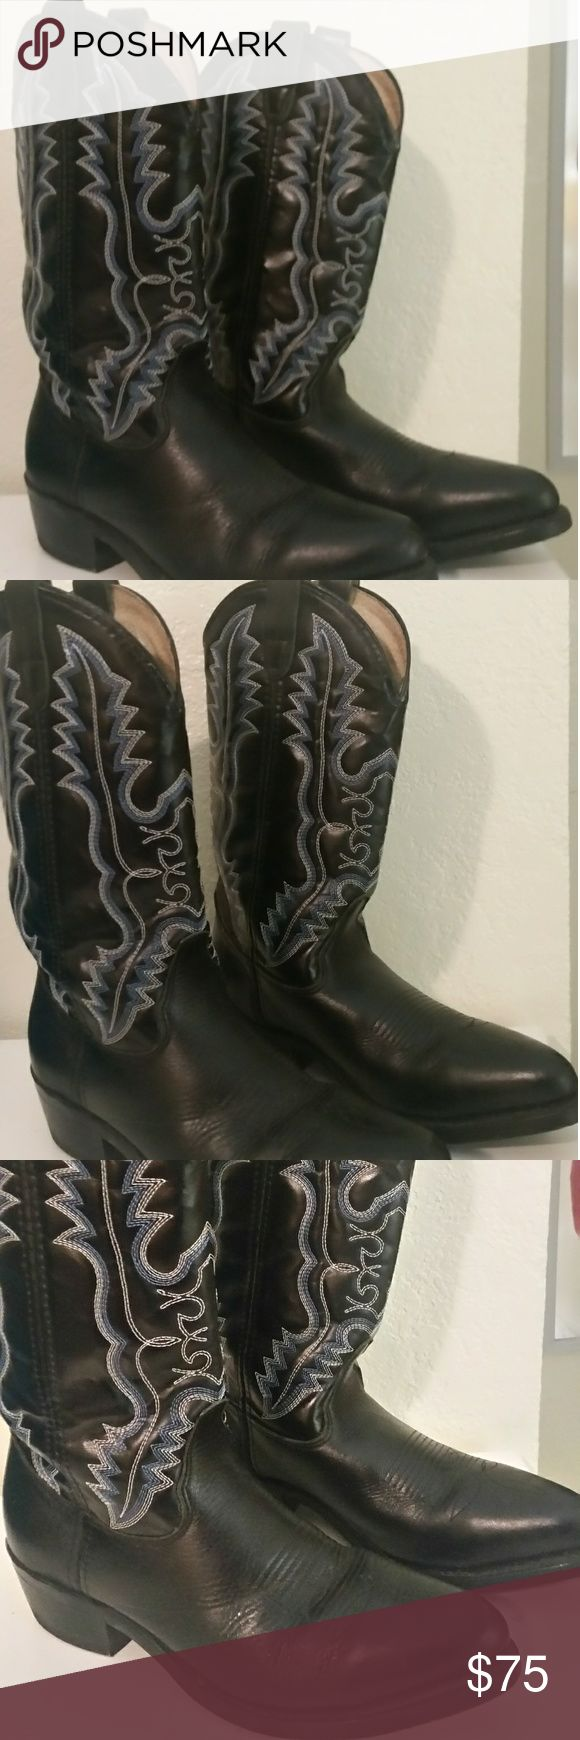 DBL H Cowboy, Riding, Biker Boots Mens 8.5 COWBOY, Rodeo, Biker, Riding, Dance these steel.toed boots would even be a good work boot.These BOOTS were WORN ONCE, are all weather Leather with beautiful hand stitching. Rugged Vibram-like ATZEC SOLES will not disappoitnt you.  They really are virtually new and in Mint.condition,. They don't fit me. So,They need a good home!! Good luck bidding questions will get a prompt reply.. Double Shoes Cowboy & Western Boots